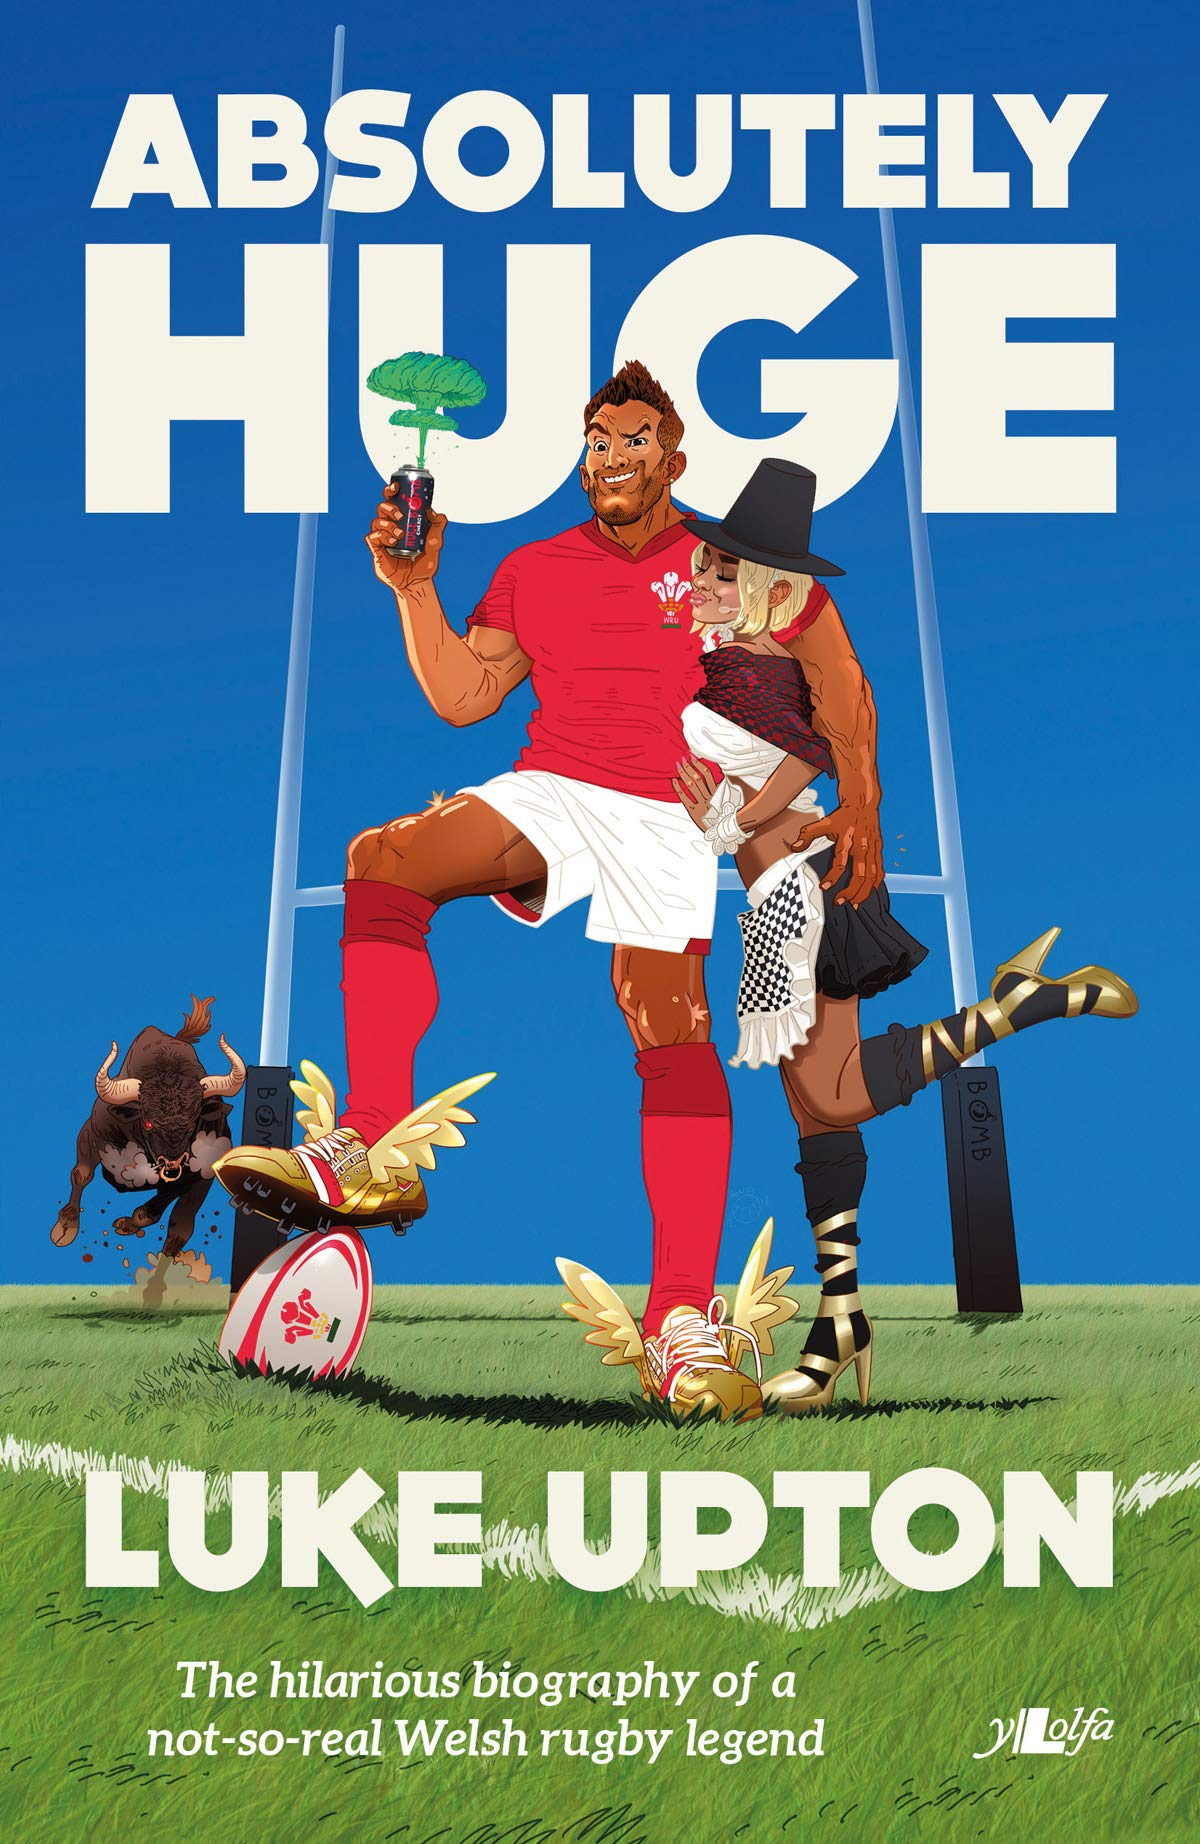 Absolutely Huge - The Hilarious Biography of a Not-So-Real Welsh Rugby Legend: Amazon.es: Luke Upton: Libros en idiomas extranjeros